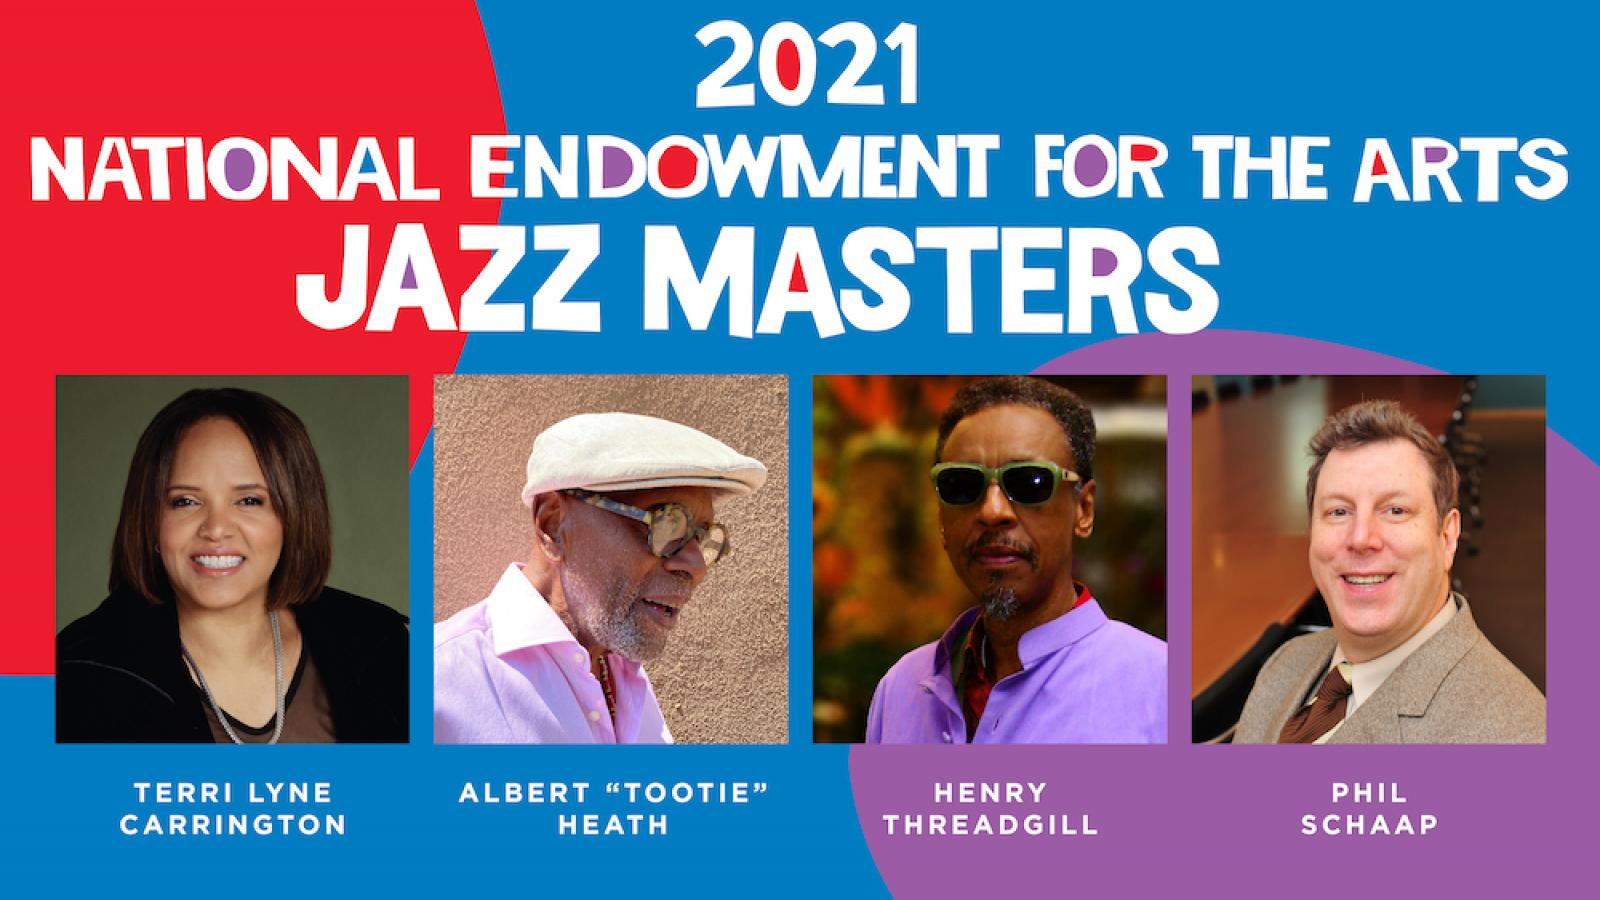 a collage of photos of the 2021 NEA Jazz Masters